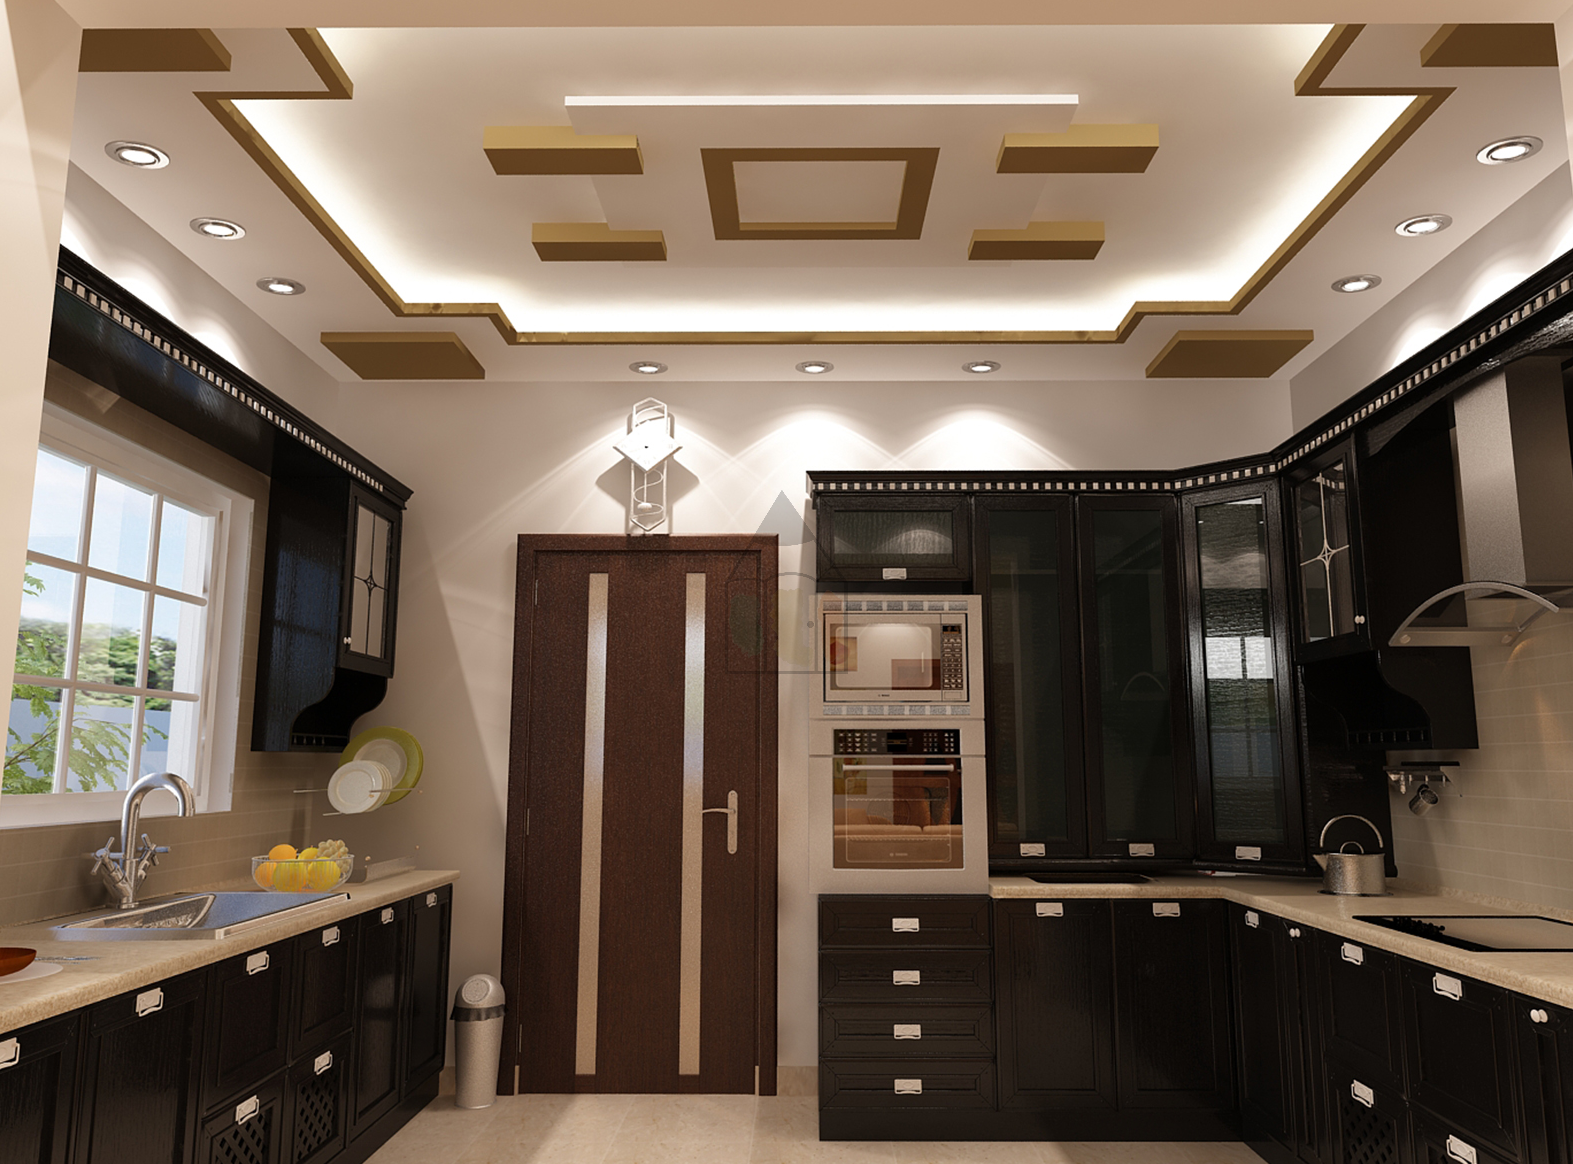 Ceiling Design Online Picnorth Online Photo Editor And Processing Pop In 2019